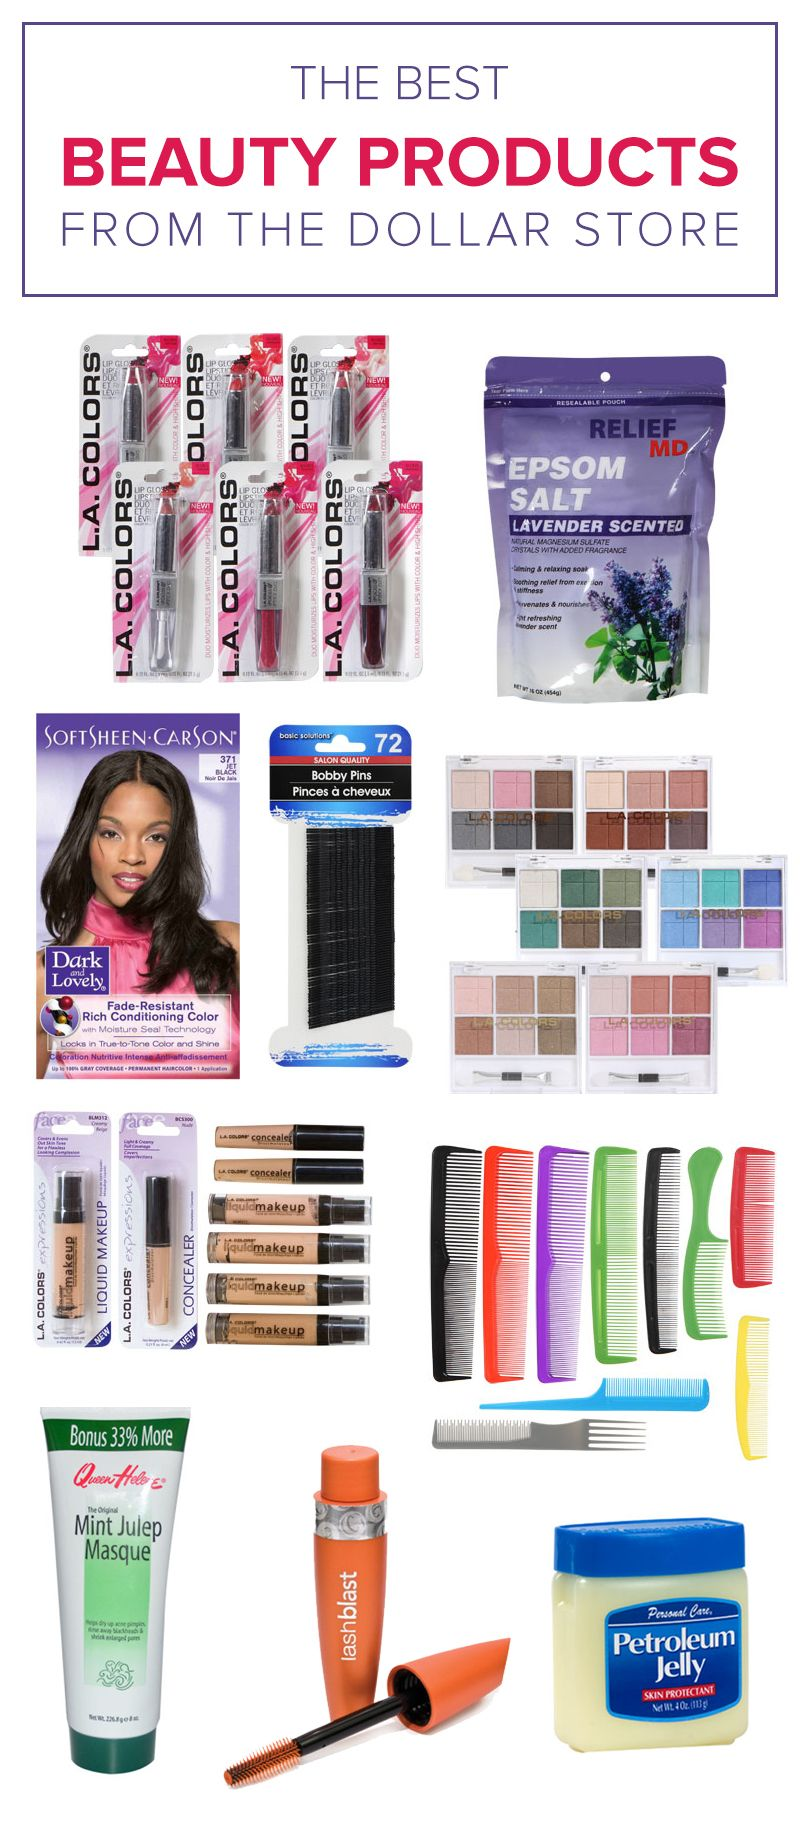 2ac83291131 These are the best beauty products available at your local dollar store.  From hair color